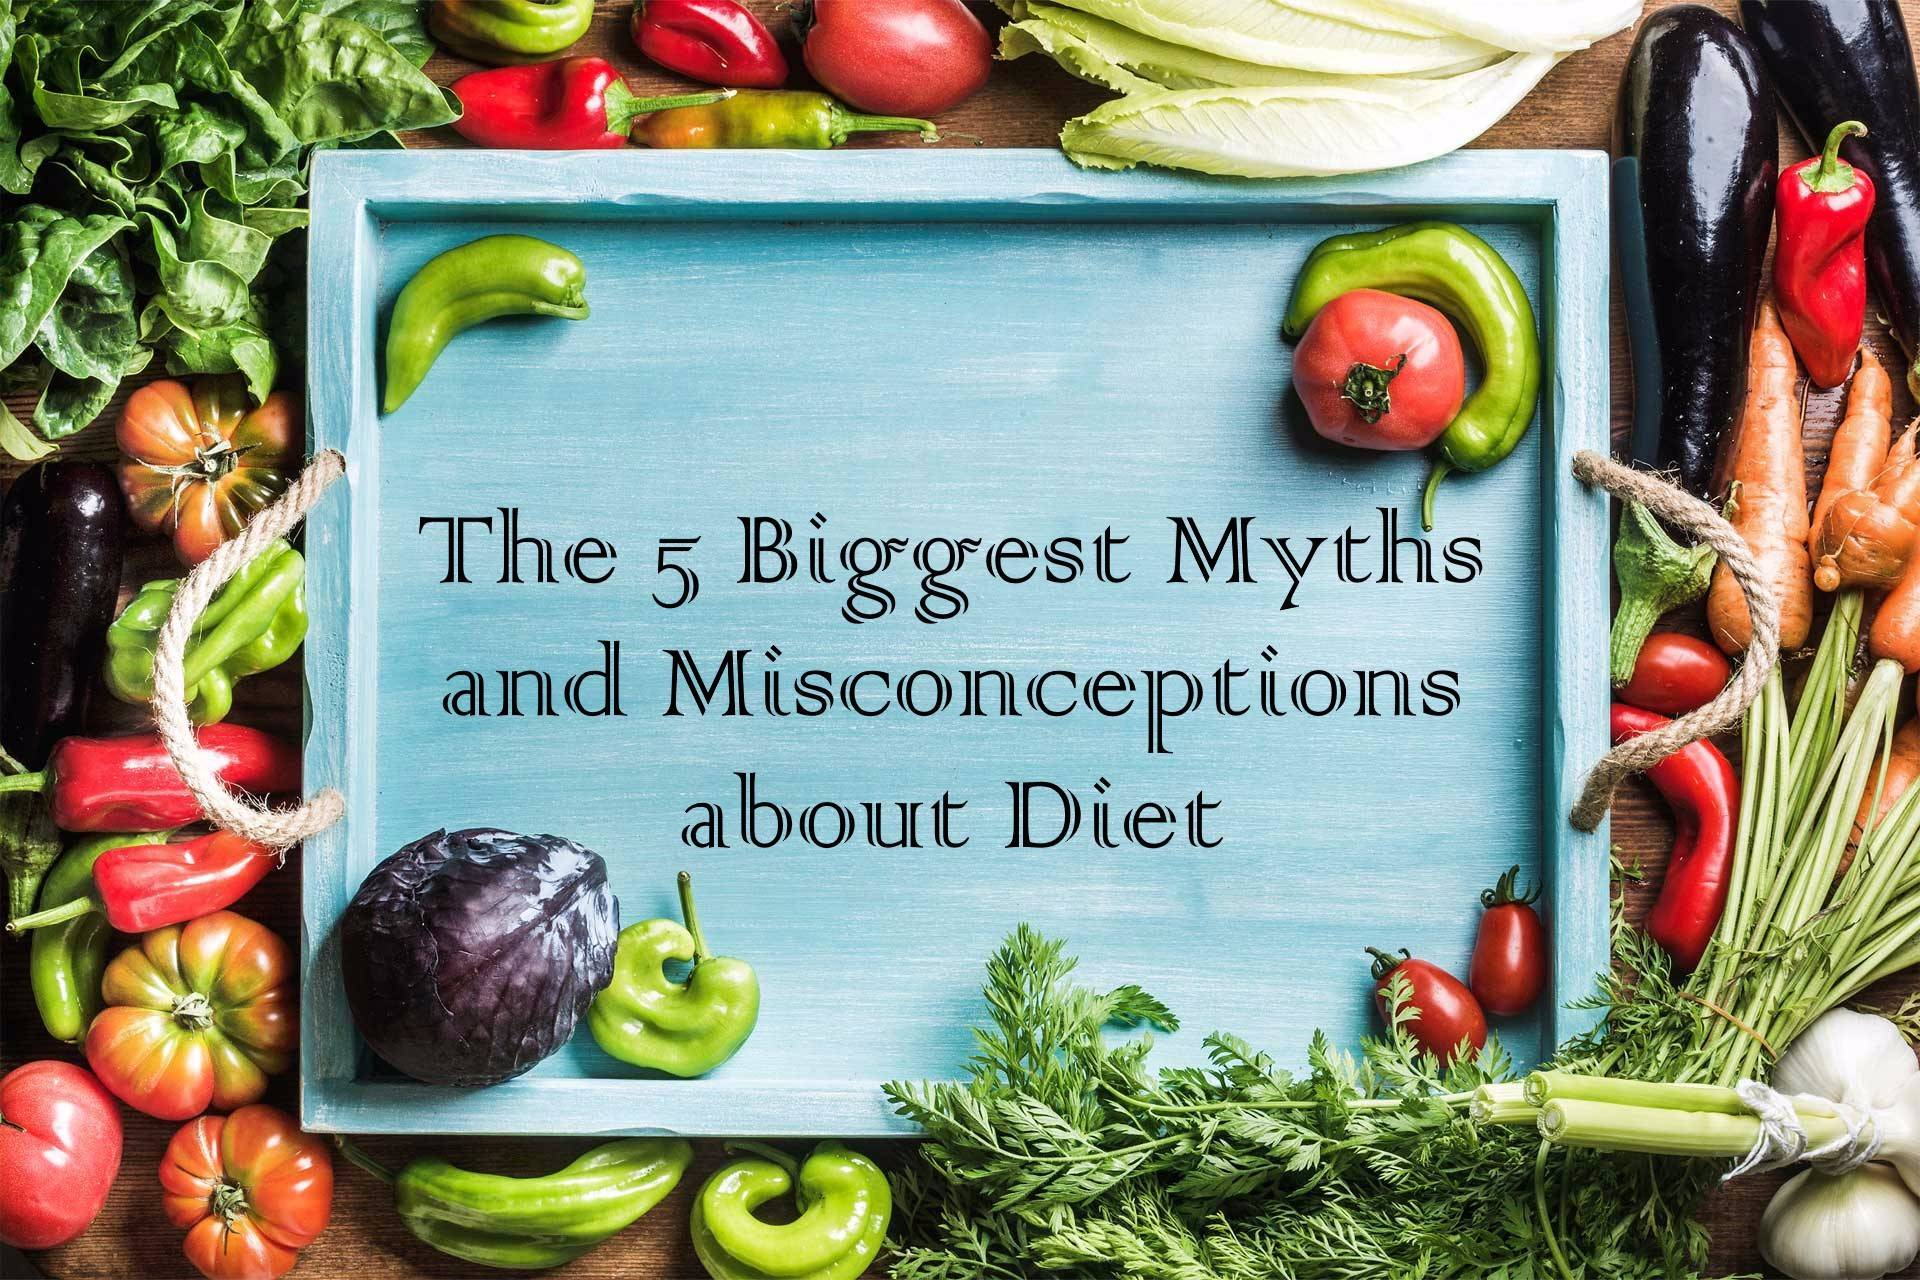 The 5 Biggest Myths and Misconceptions about Diet image